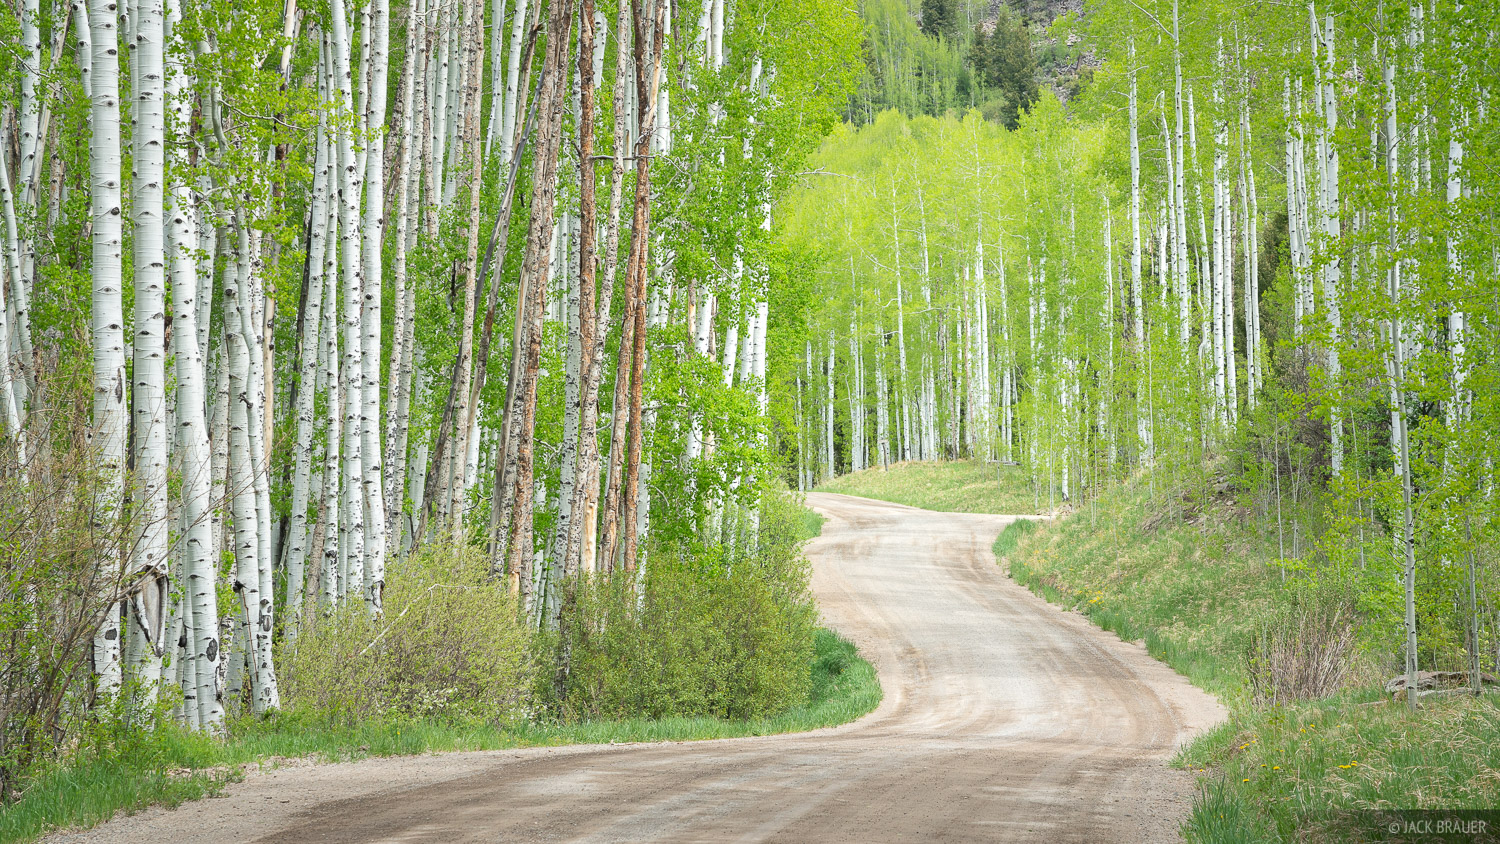 Colorado, San Juan Mountains, Sneffels Range, aspens, road, May, A7R3, large prints, spring, green, 2018